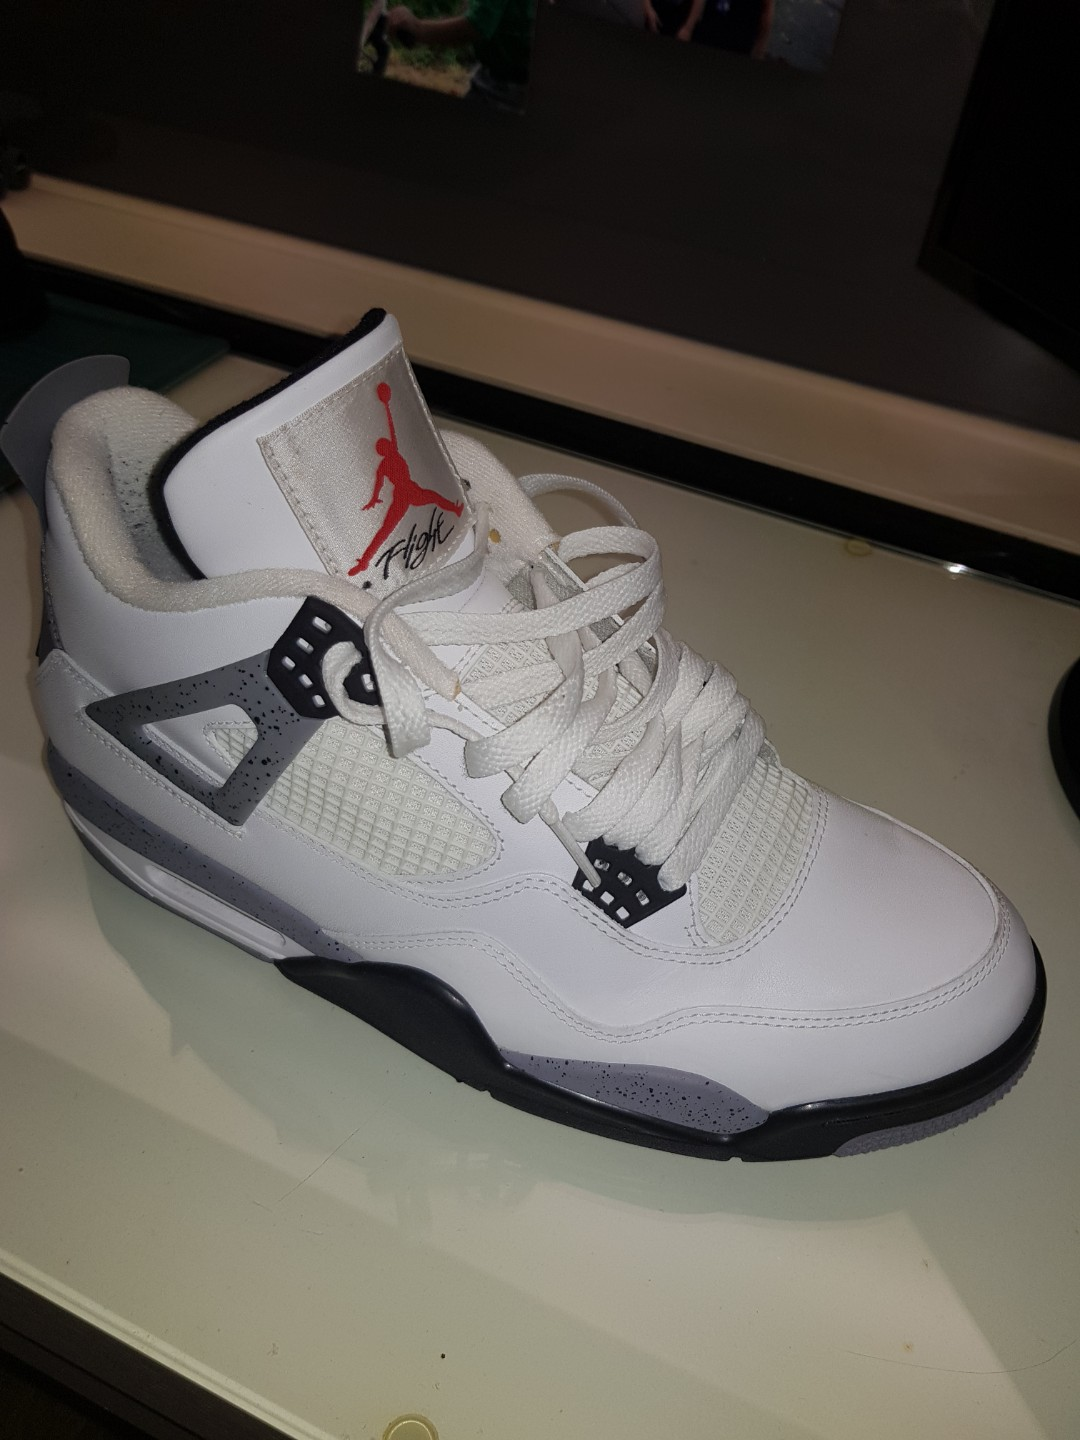 2f35ec4c1 AIR JORDAN 4 WHITE CEMENT US11 from goat.com